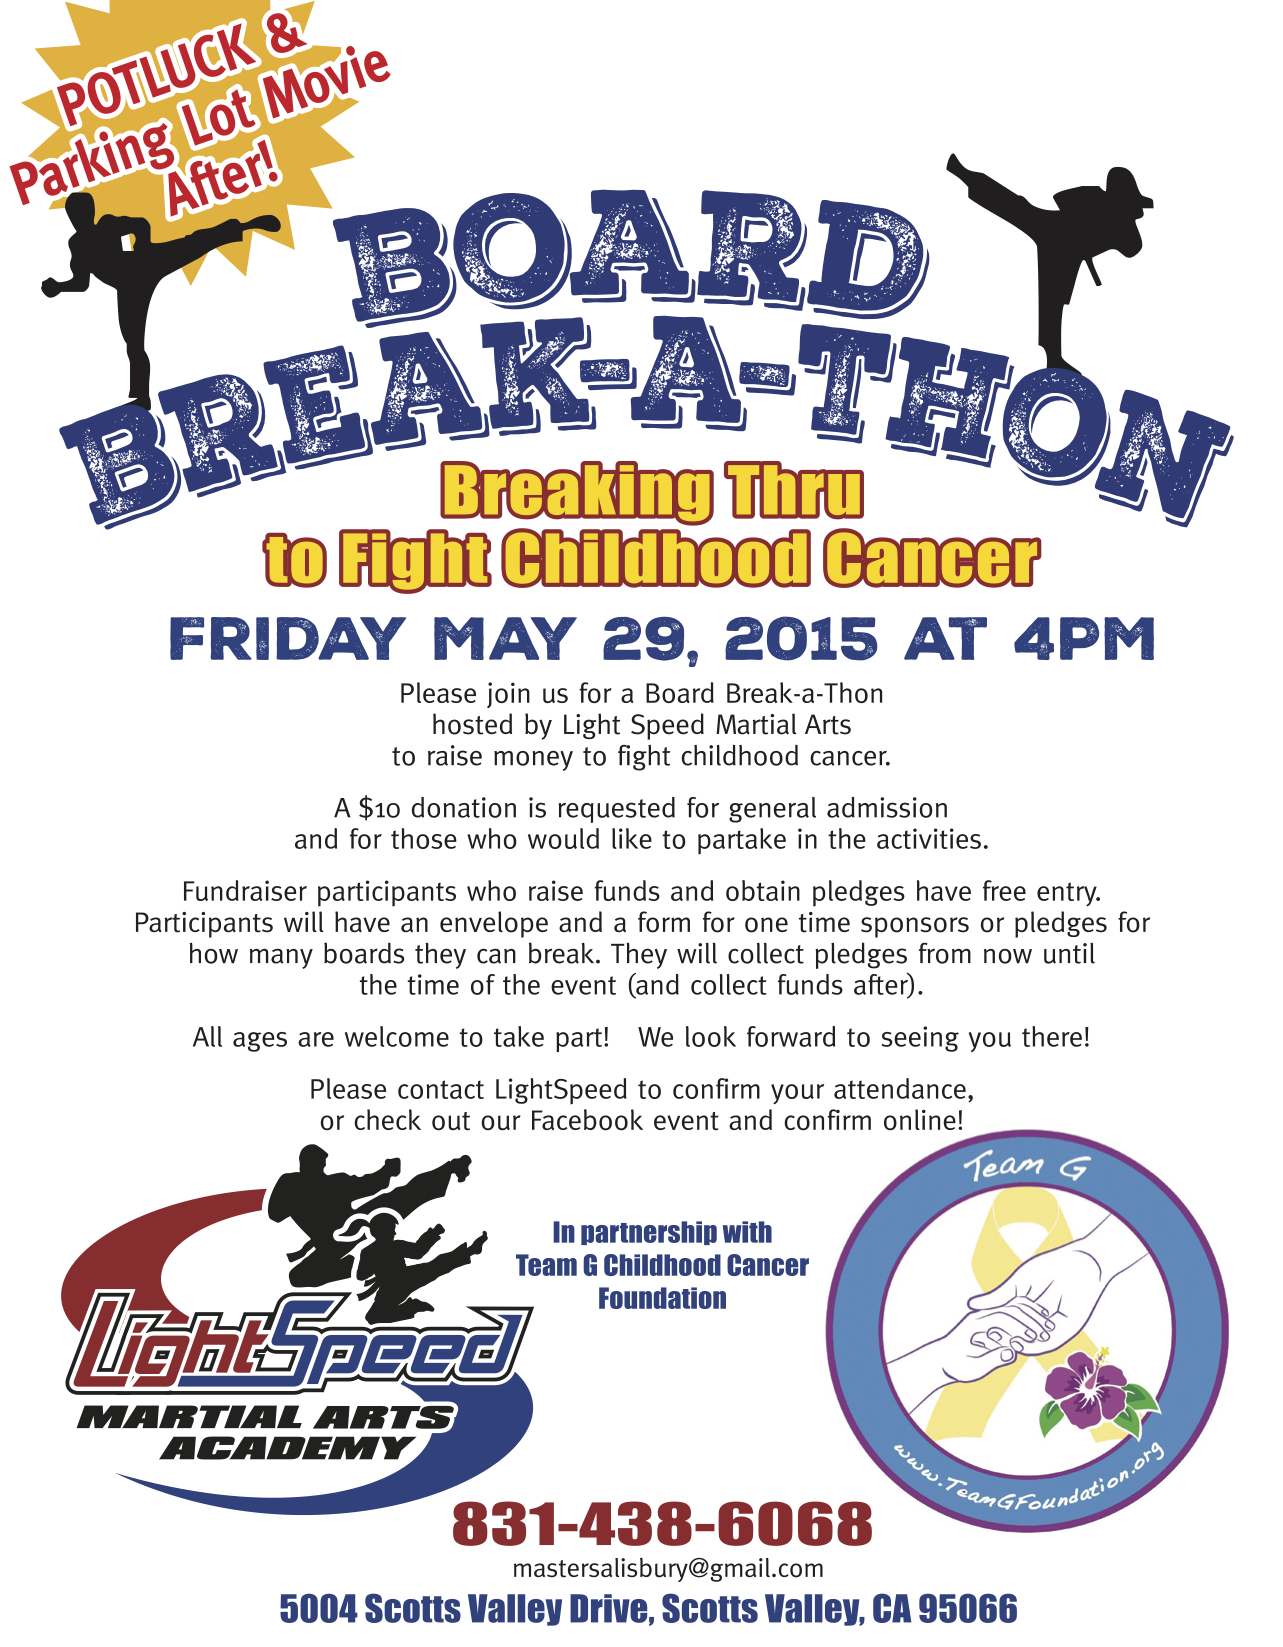 Breaking Boards to Fight Childhood Cancer